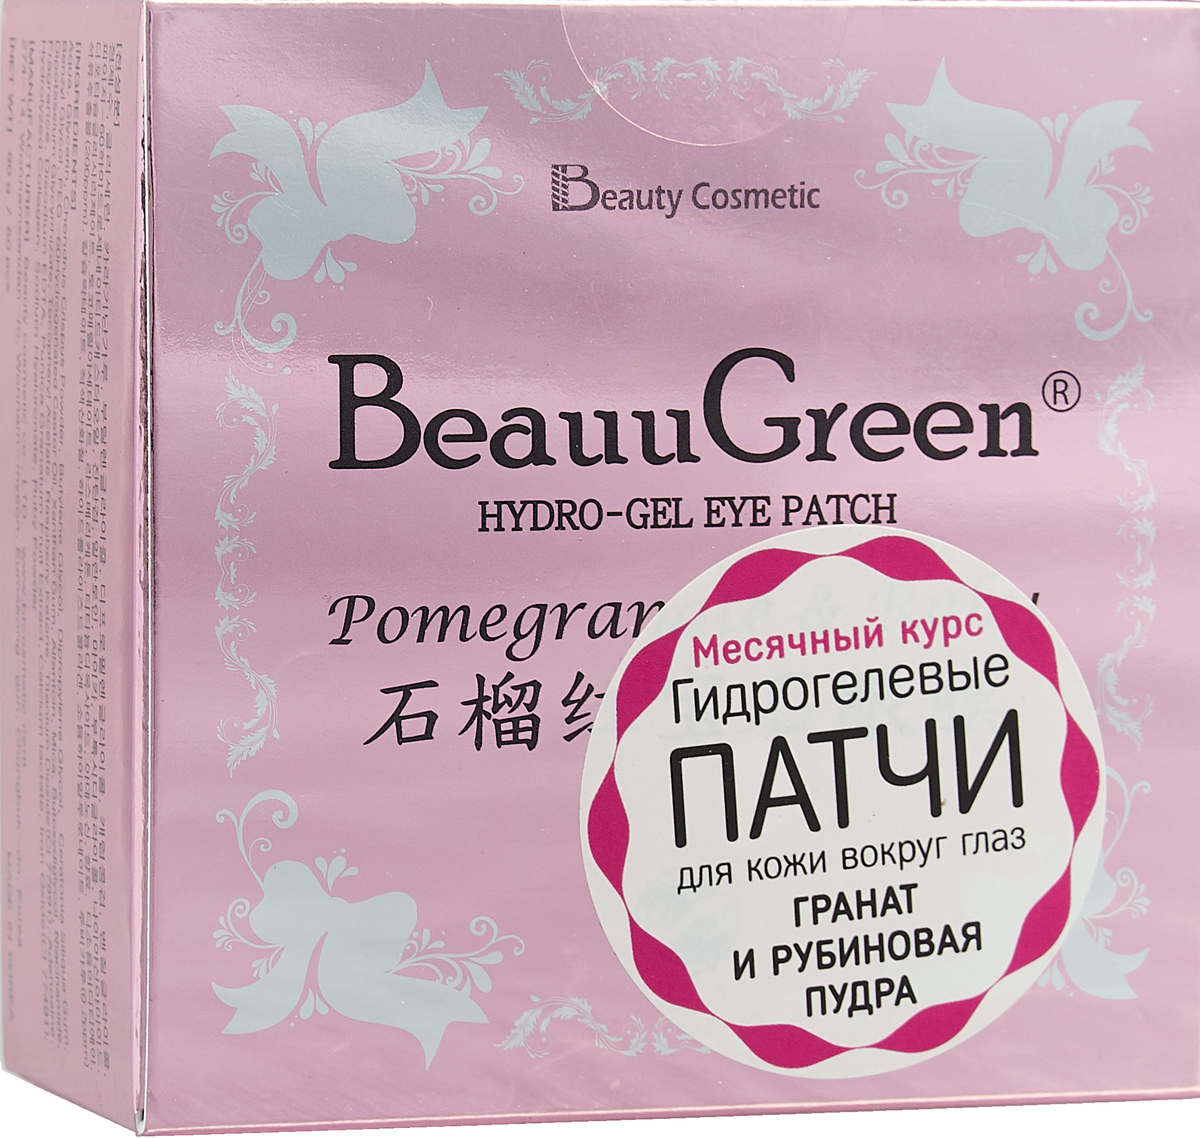 BeauuGreen Гидрогелевые патчи для кожи вокруг глаз Pomegranate & Ruby Hydrogel Eye Patch, 90 г расслабляющие патчи для кожи вокруг глаз missha speedy solution eye relaxing patch